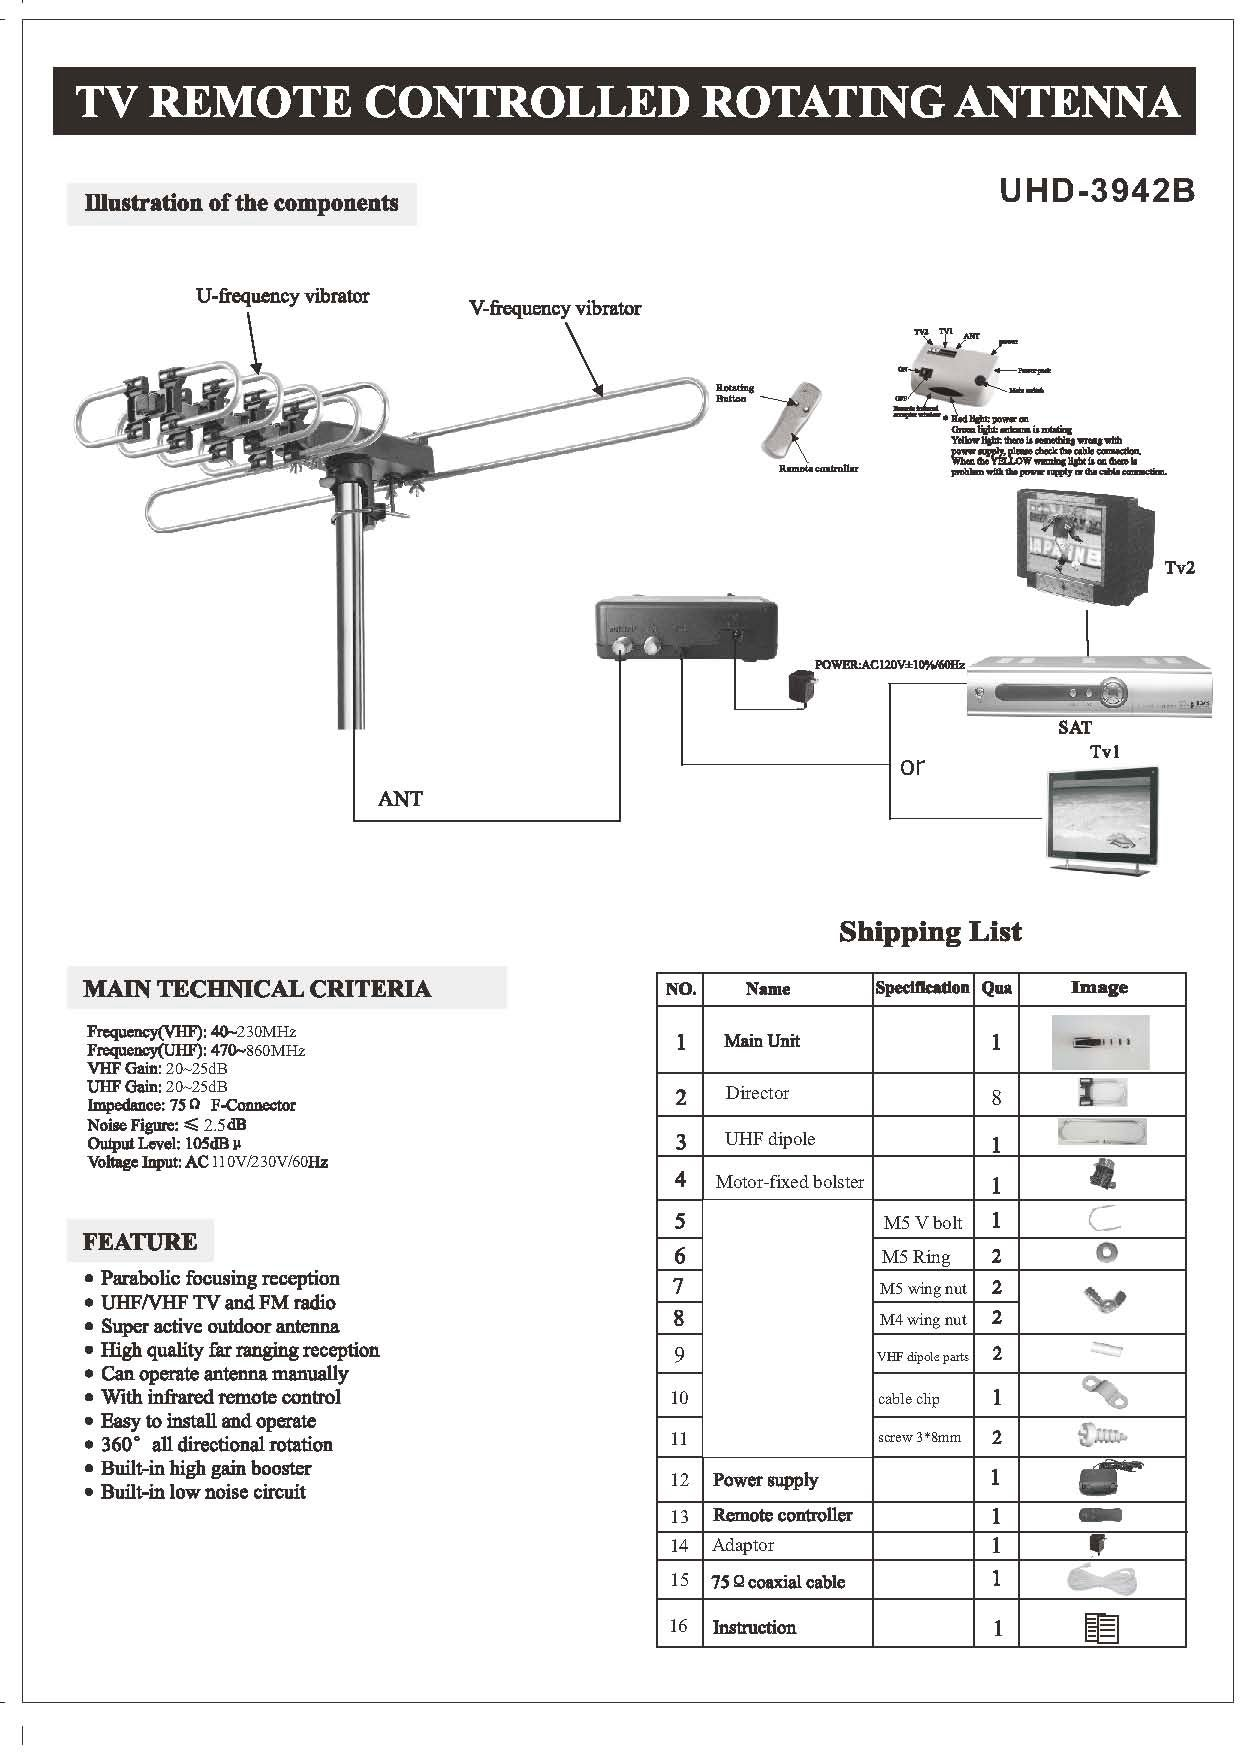 Amplified HD Digital Outdoor HDTV Antenna with Motorized 360 UHD3942B